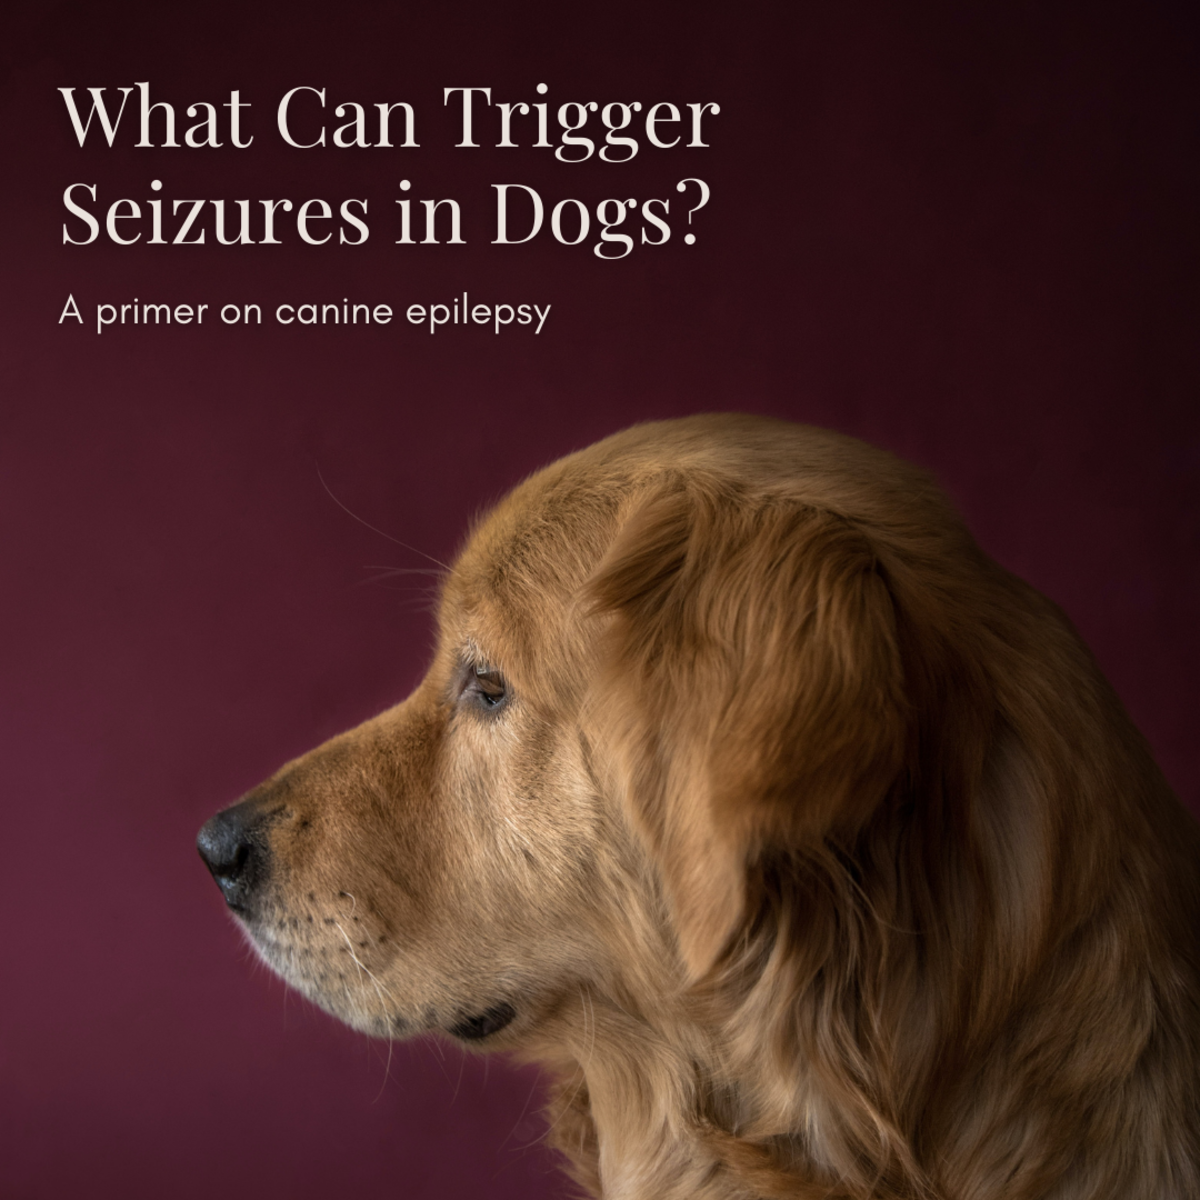 This article will provide a wealth of information on canine epilepsy, including what factors contribute to the possibility of seizures and how you can best care for your epileptic pup.